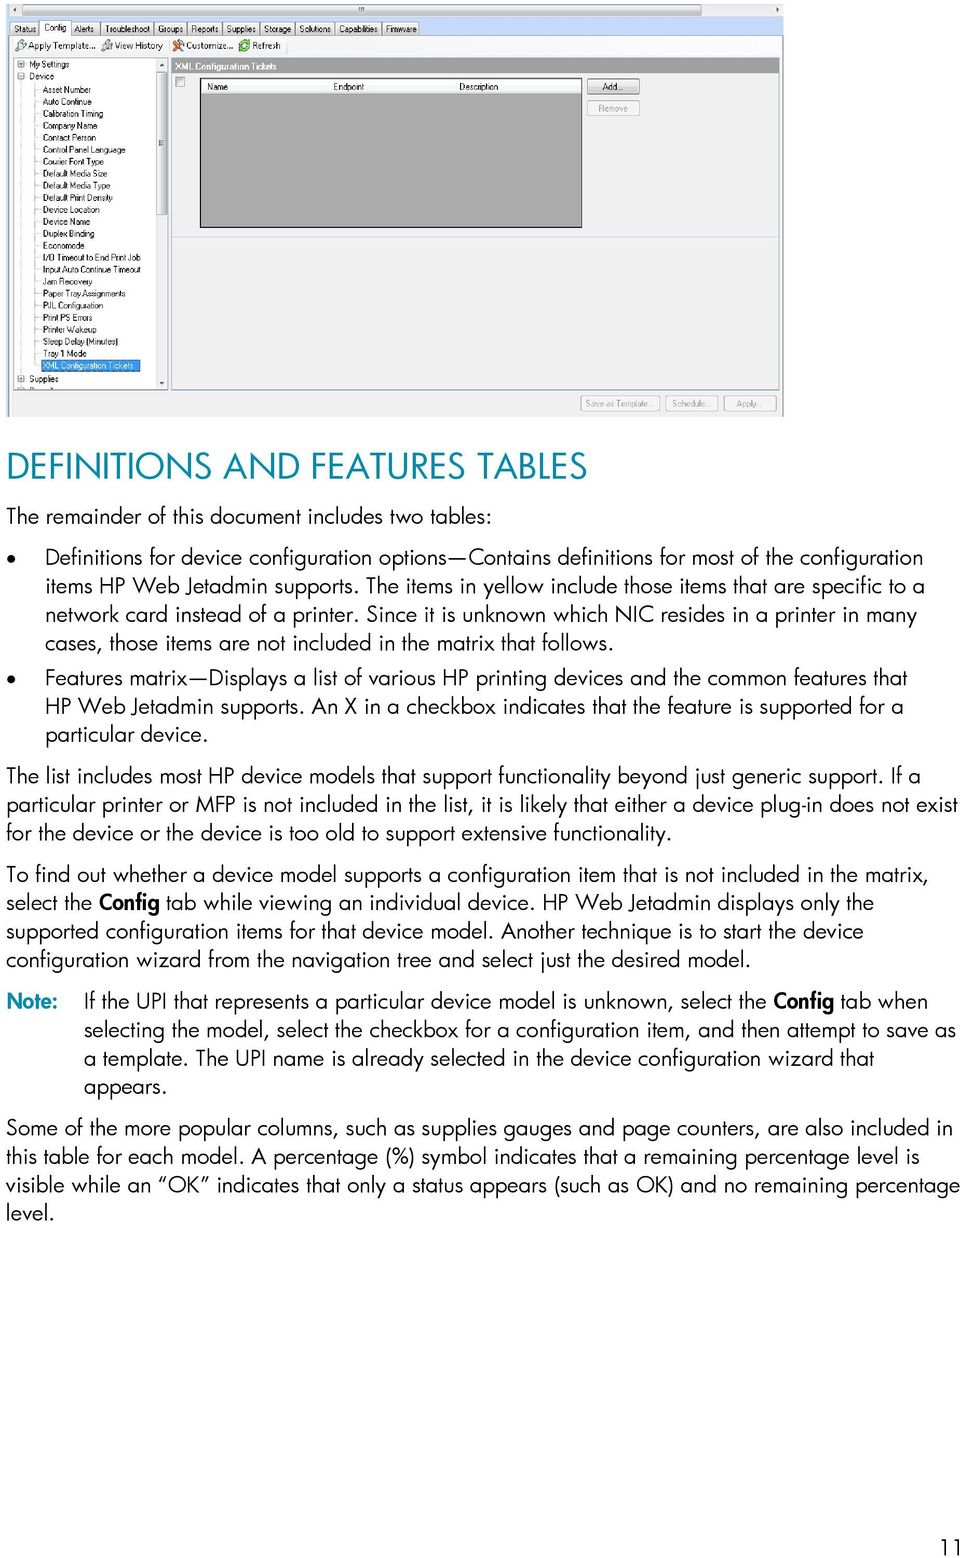 SUPPORTED PRINTER FEATURES - PDF